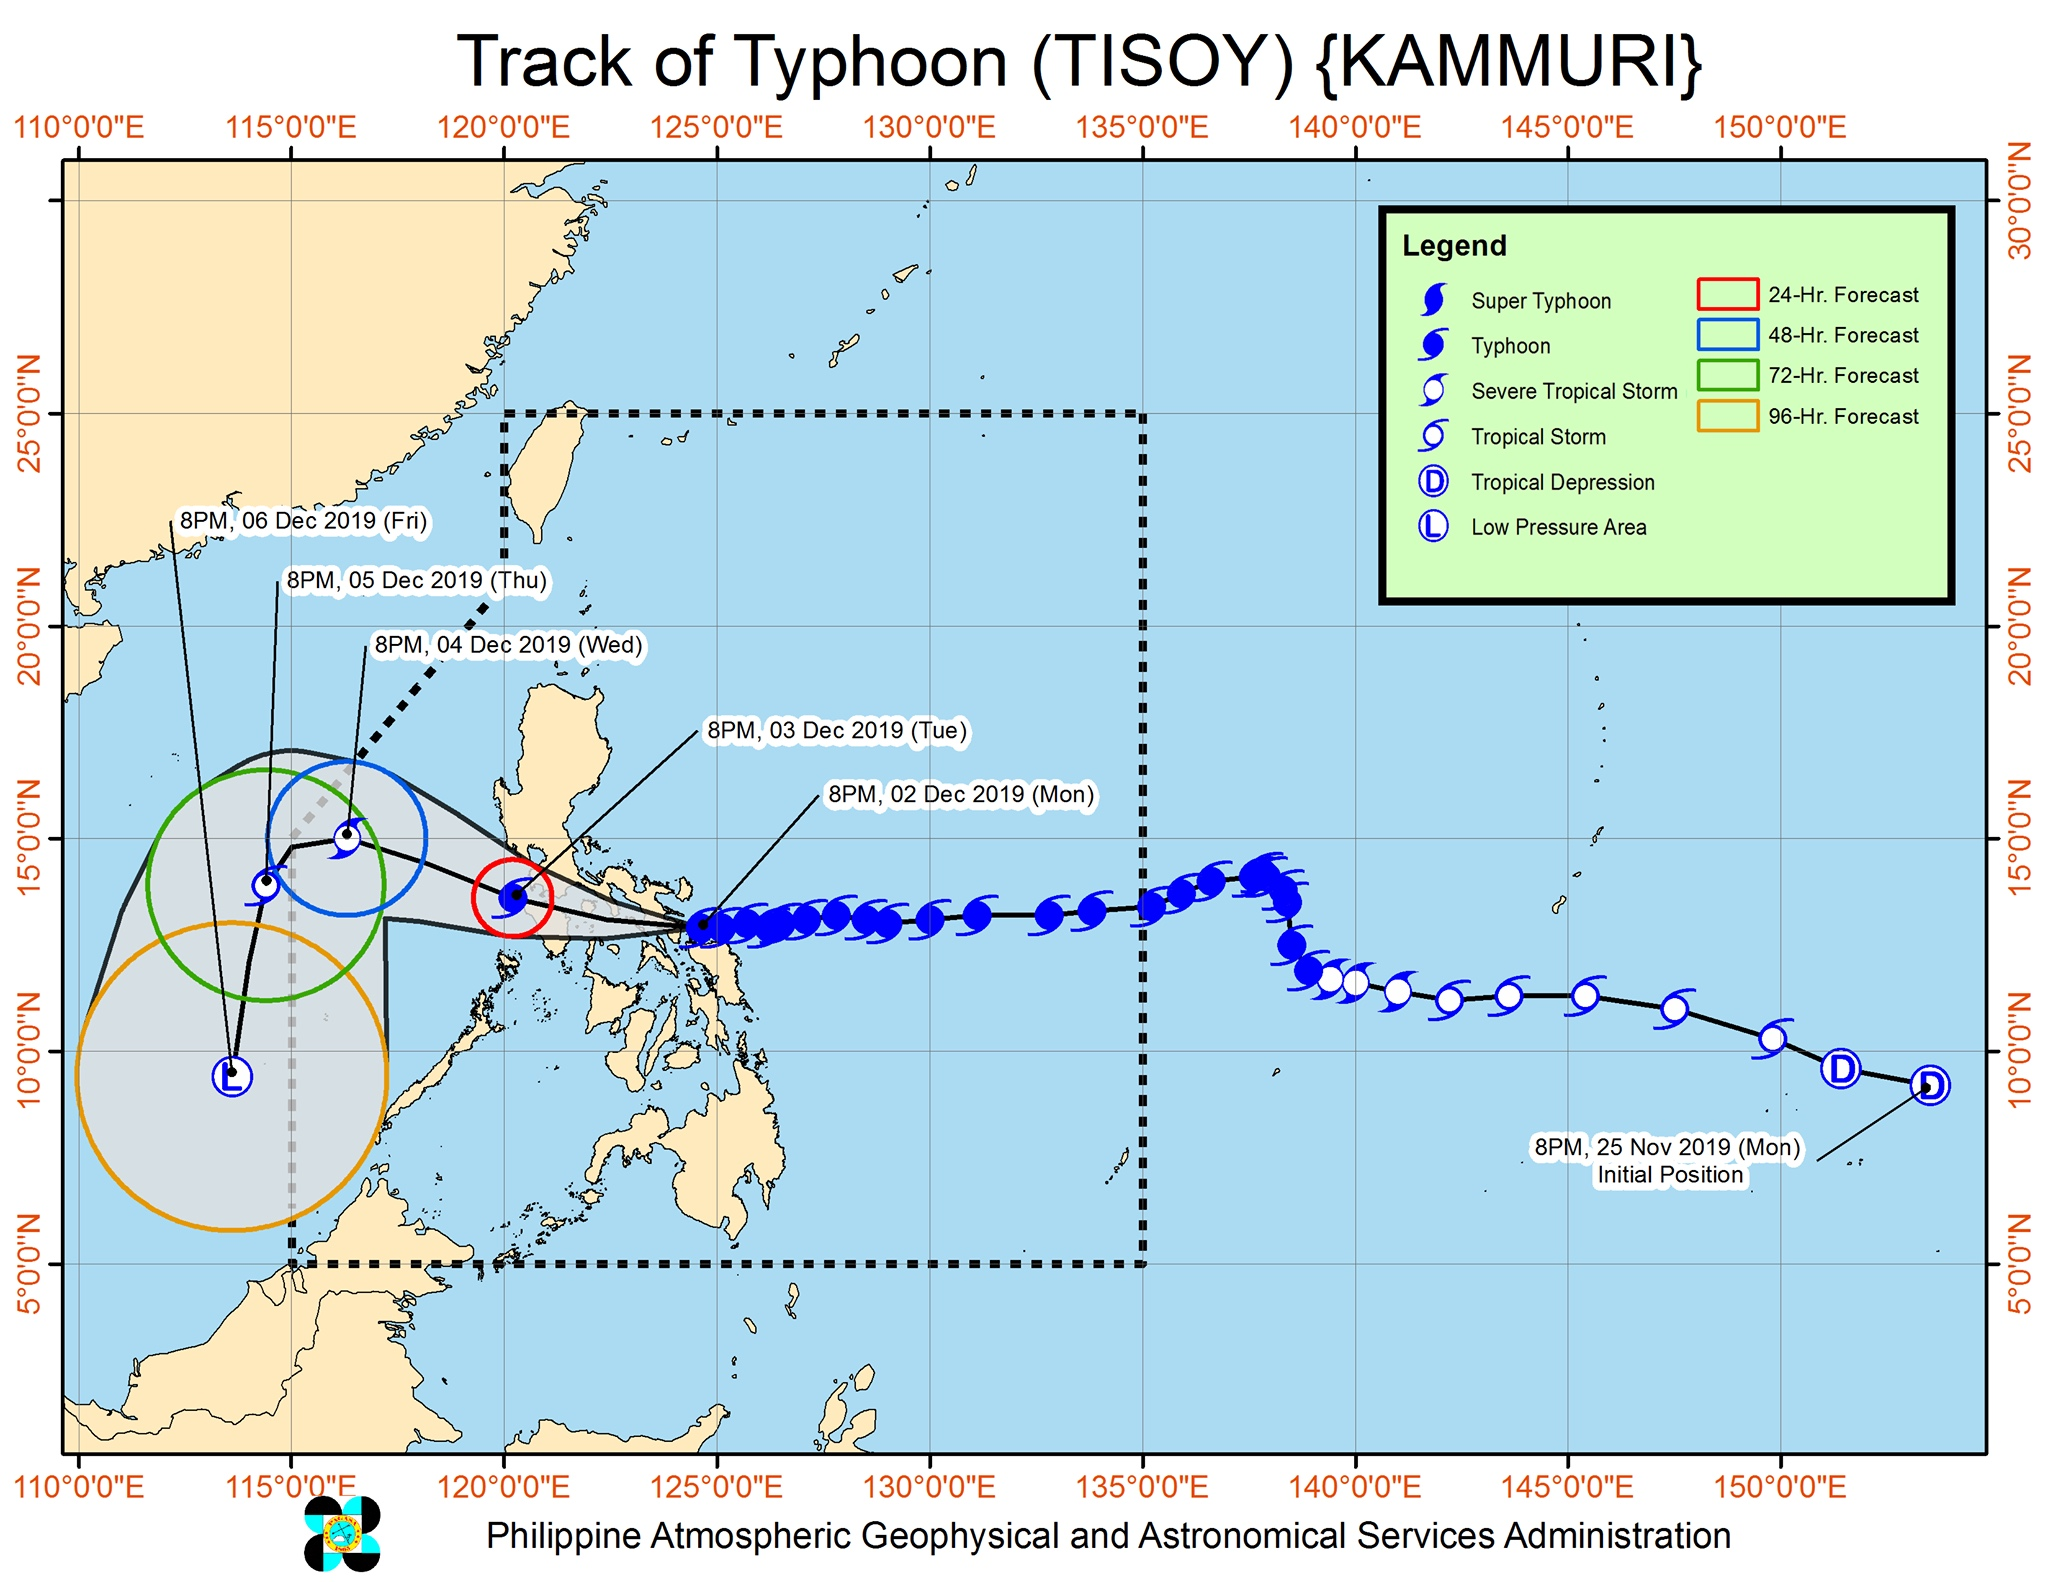 Forecast track of Typhoon Tisoy (Kammuri) as of December 2, 2019, 11 pm. Image from PAGASA